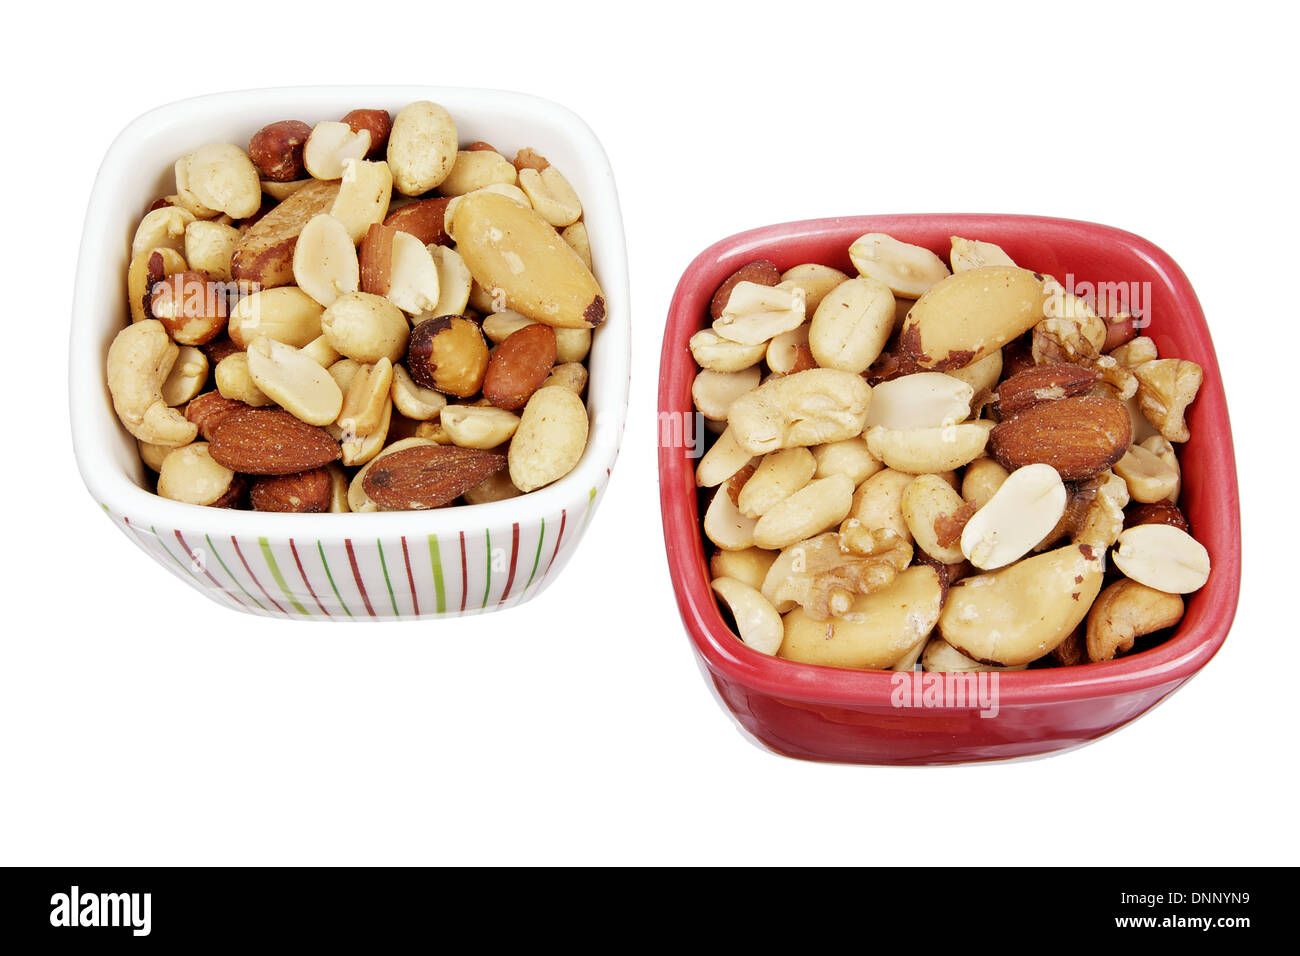 Mixed Nuts in Bowls - Stock Image